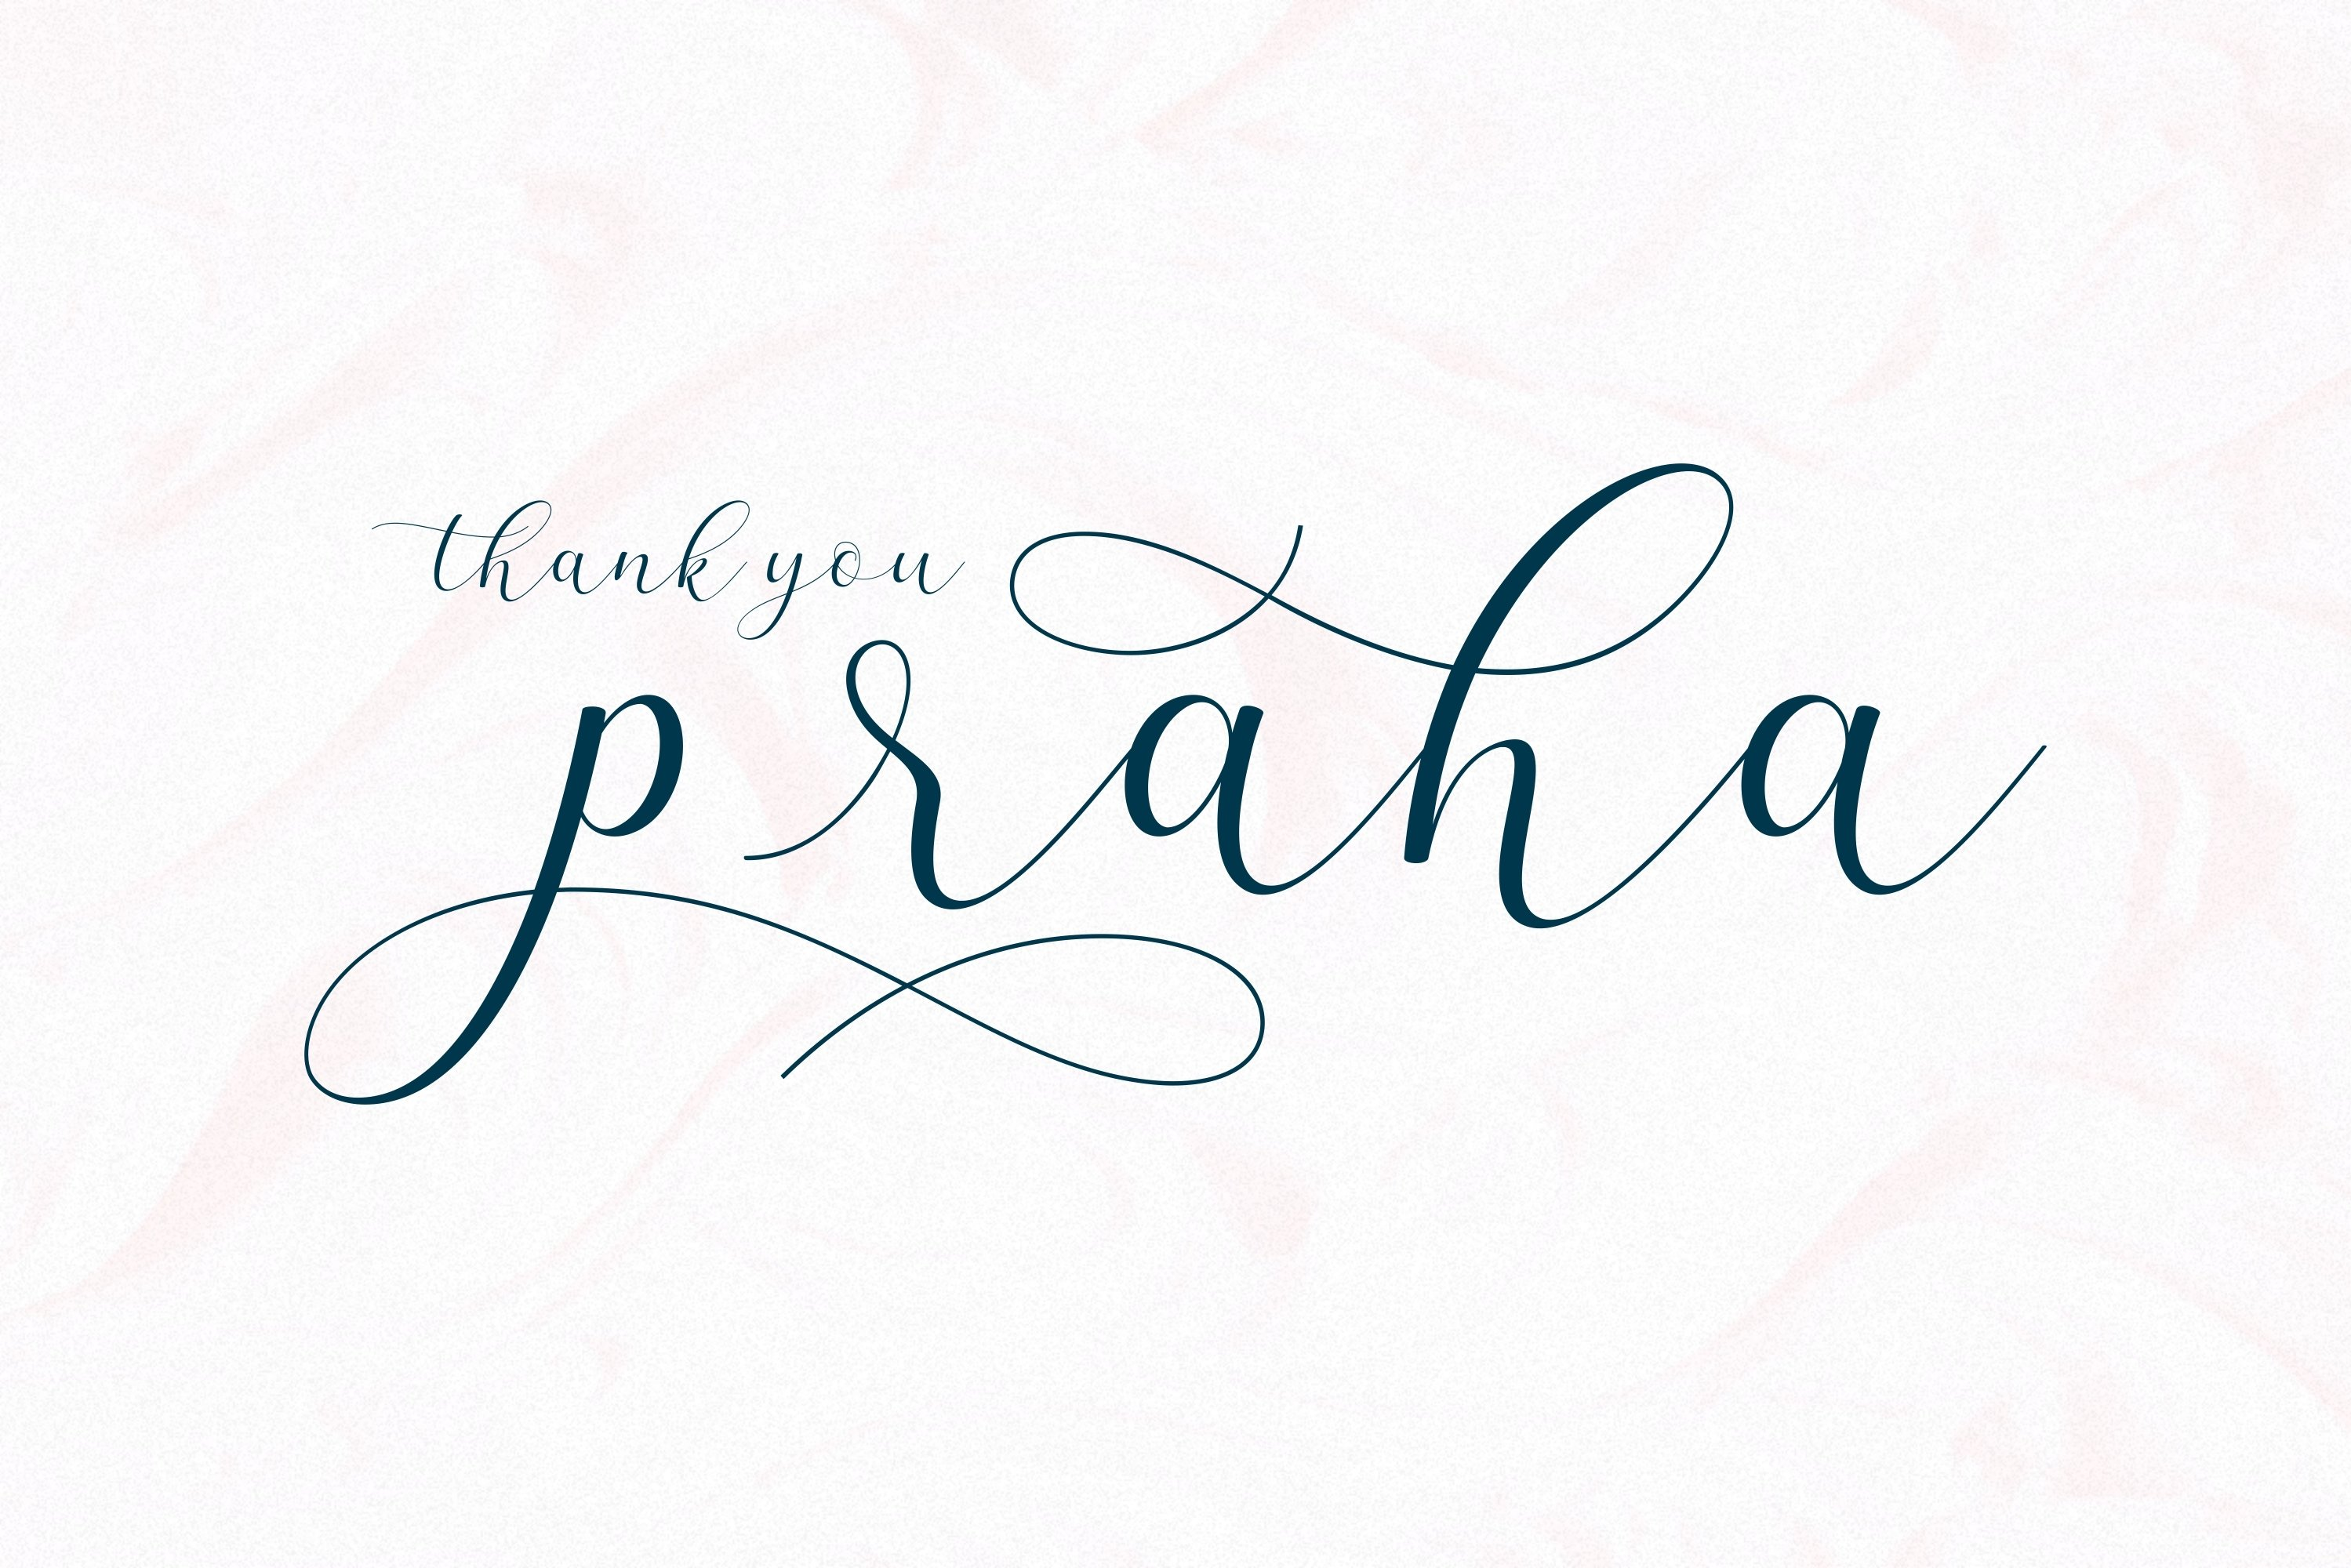 Praha - lovely clean modern calligraphy font example image 10